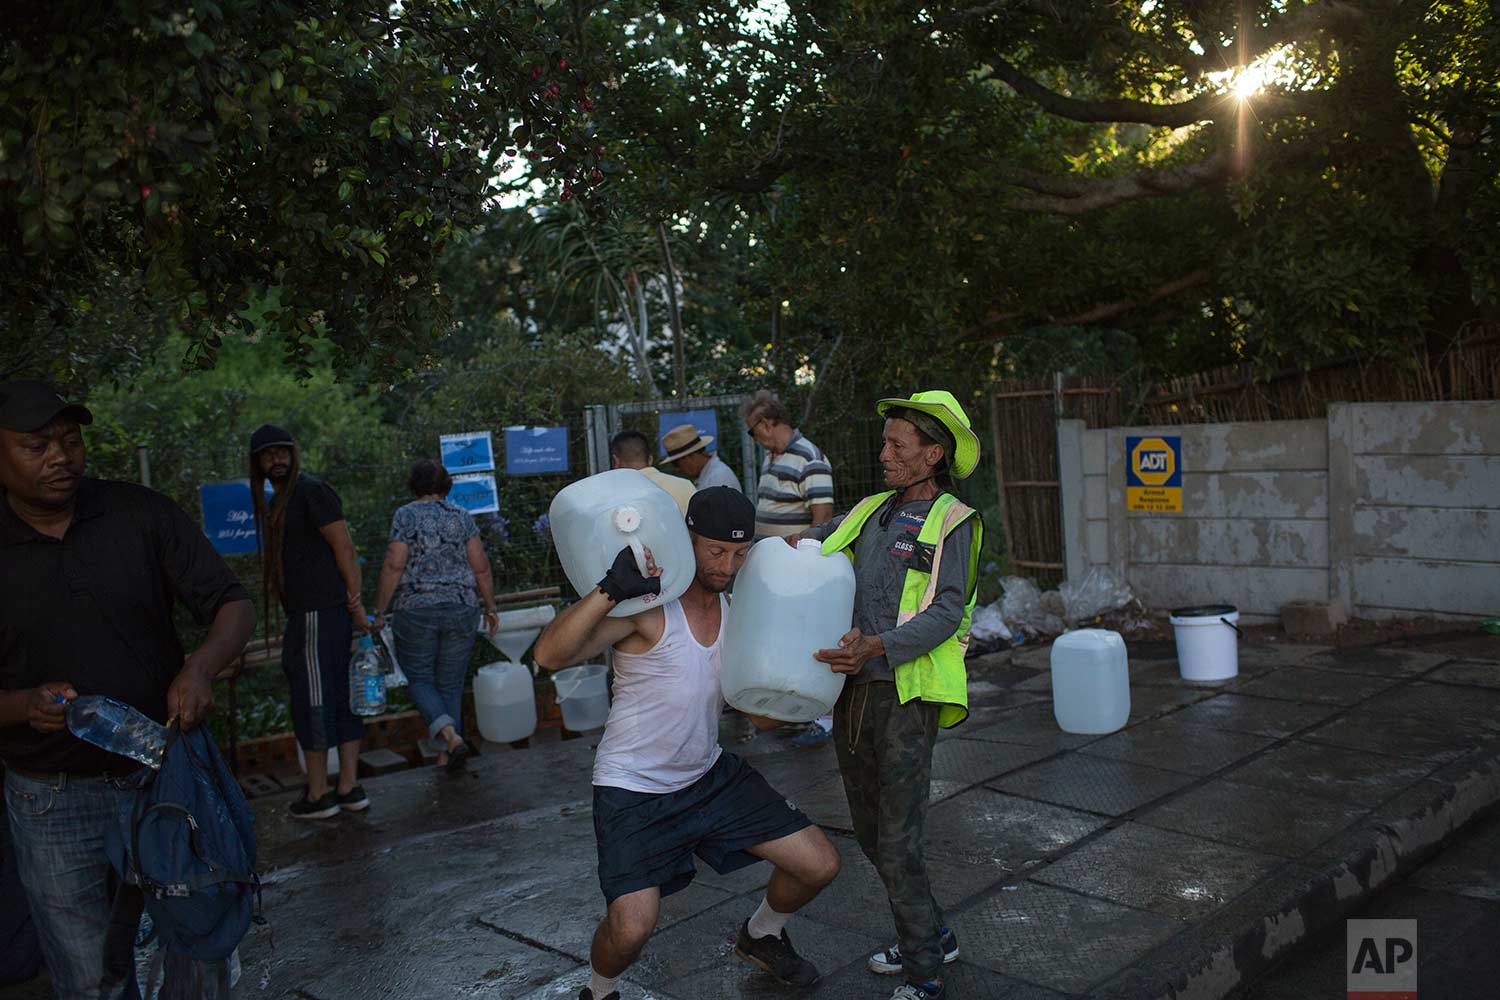 In this Thursday, Feb. 1, 2018 photo, two men help each other carry water at a source for natural spring water in Cape Town. (AP Photo/Bram Janssen)